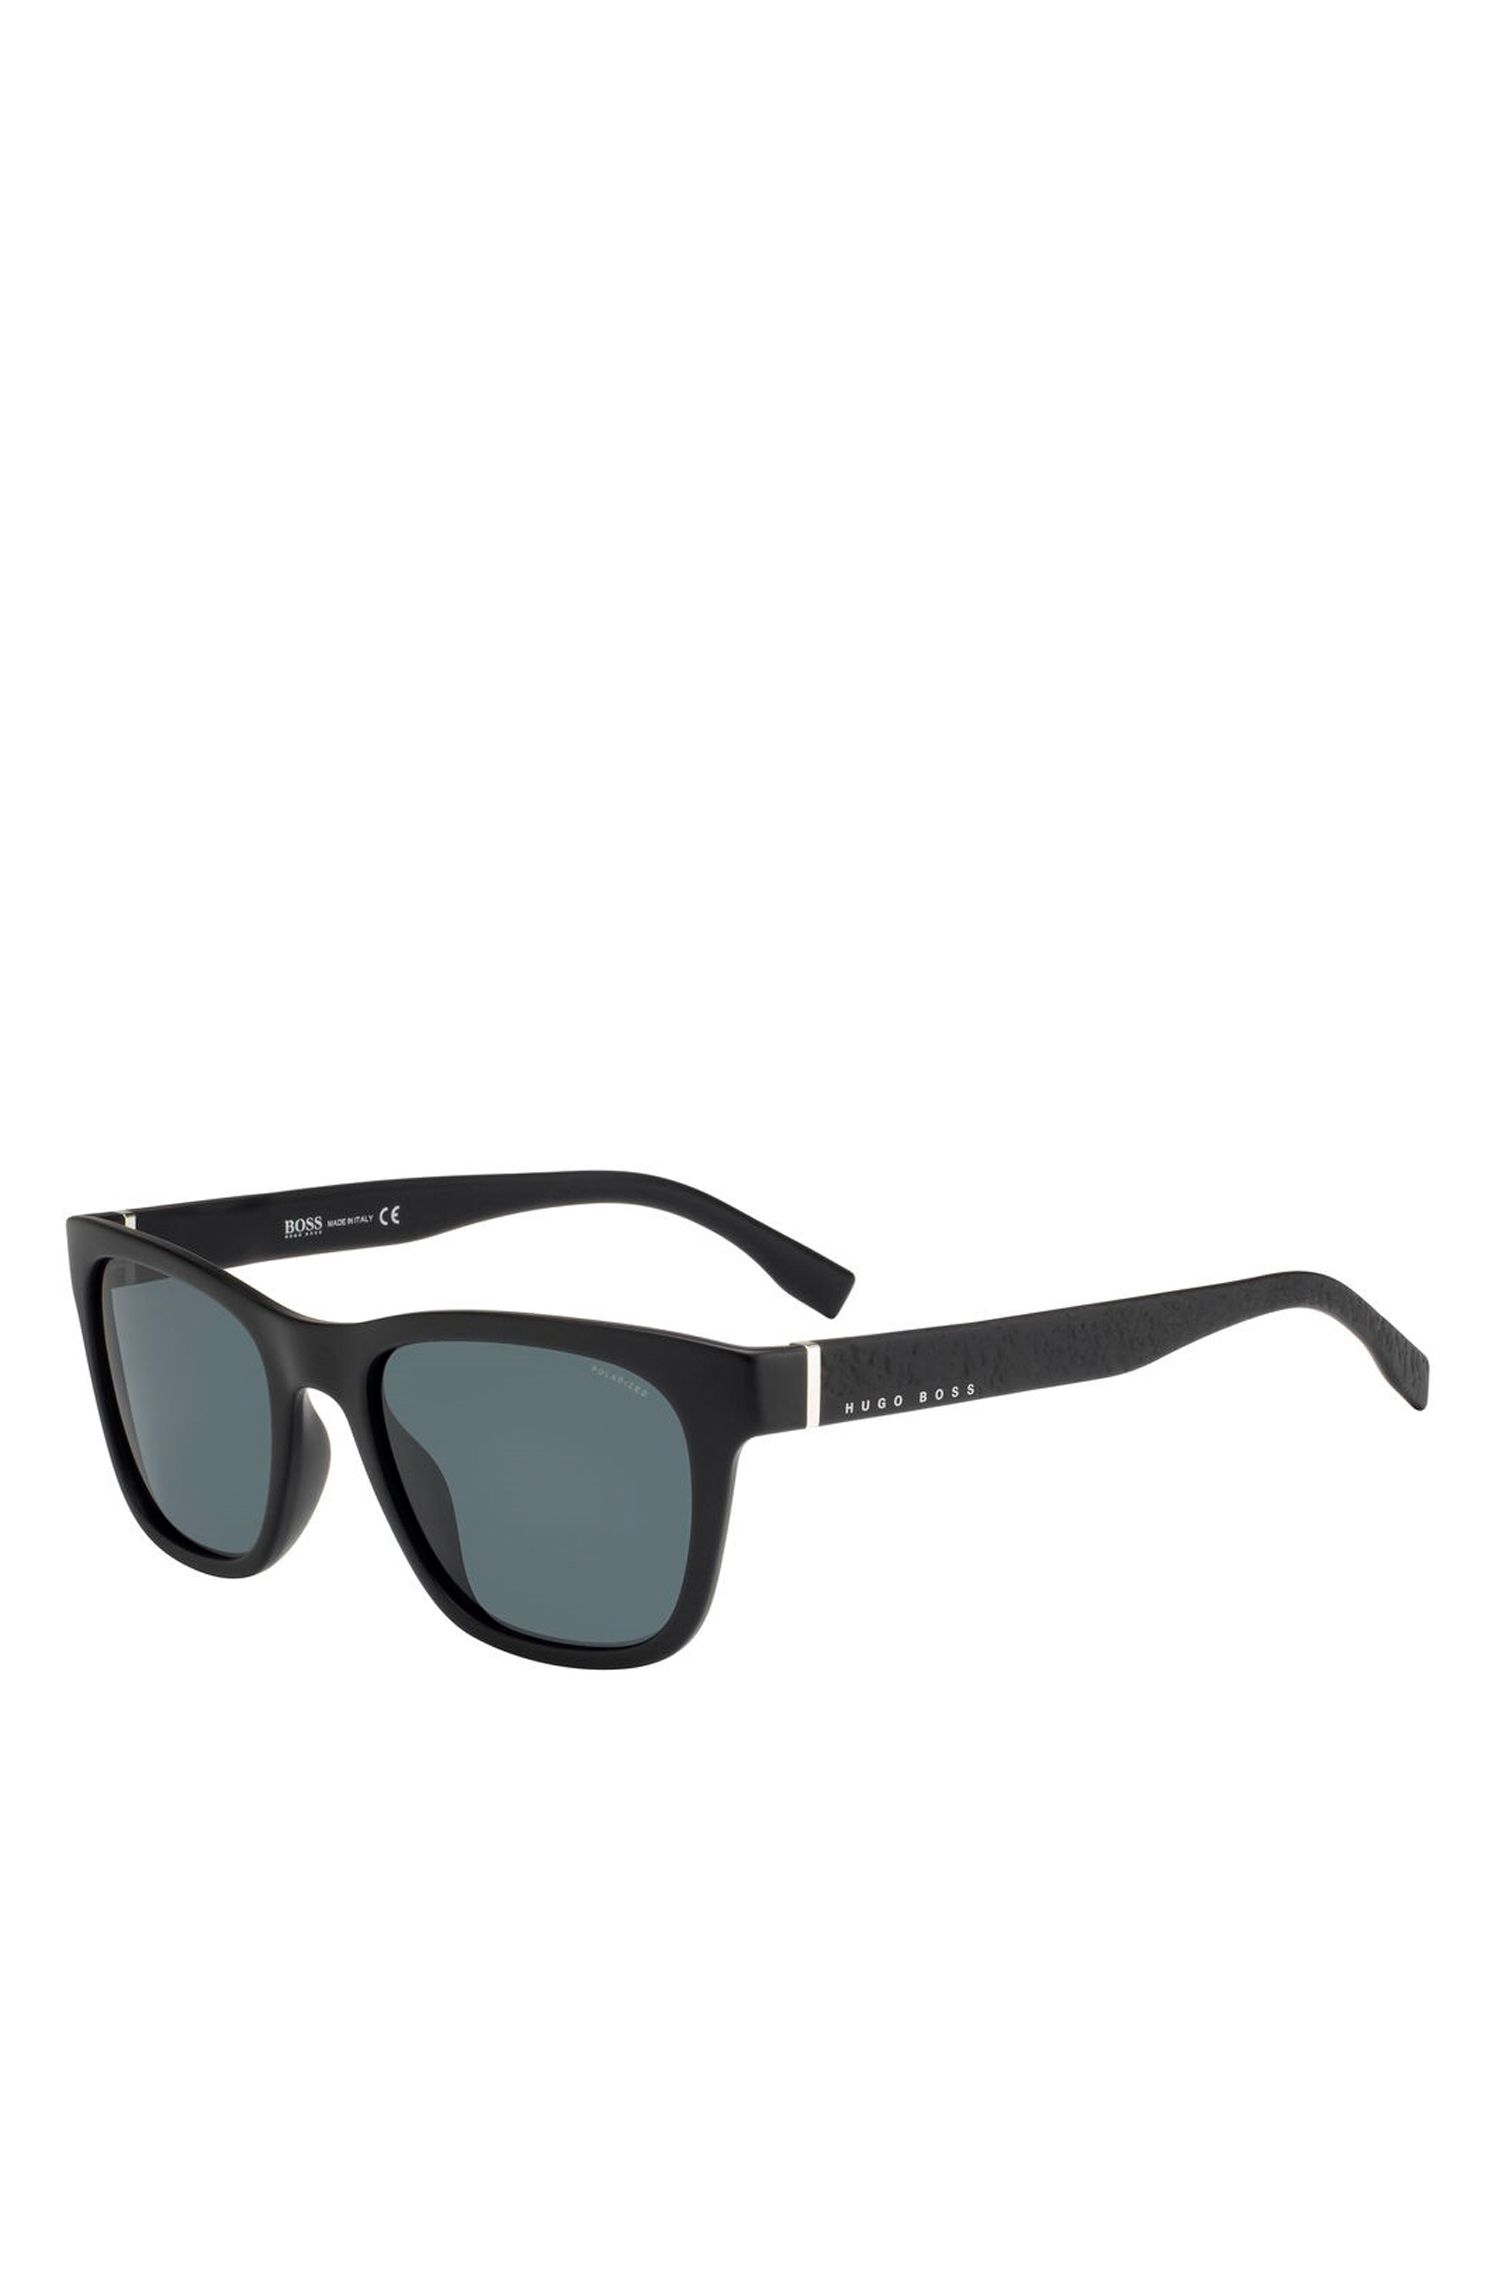 Black Lens Polarized Optyl Square Sunglasses | BOSS 0830S